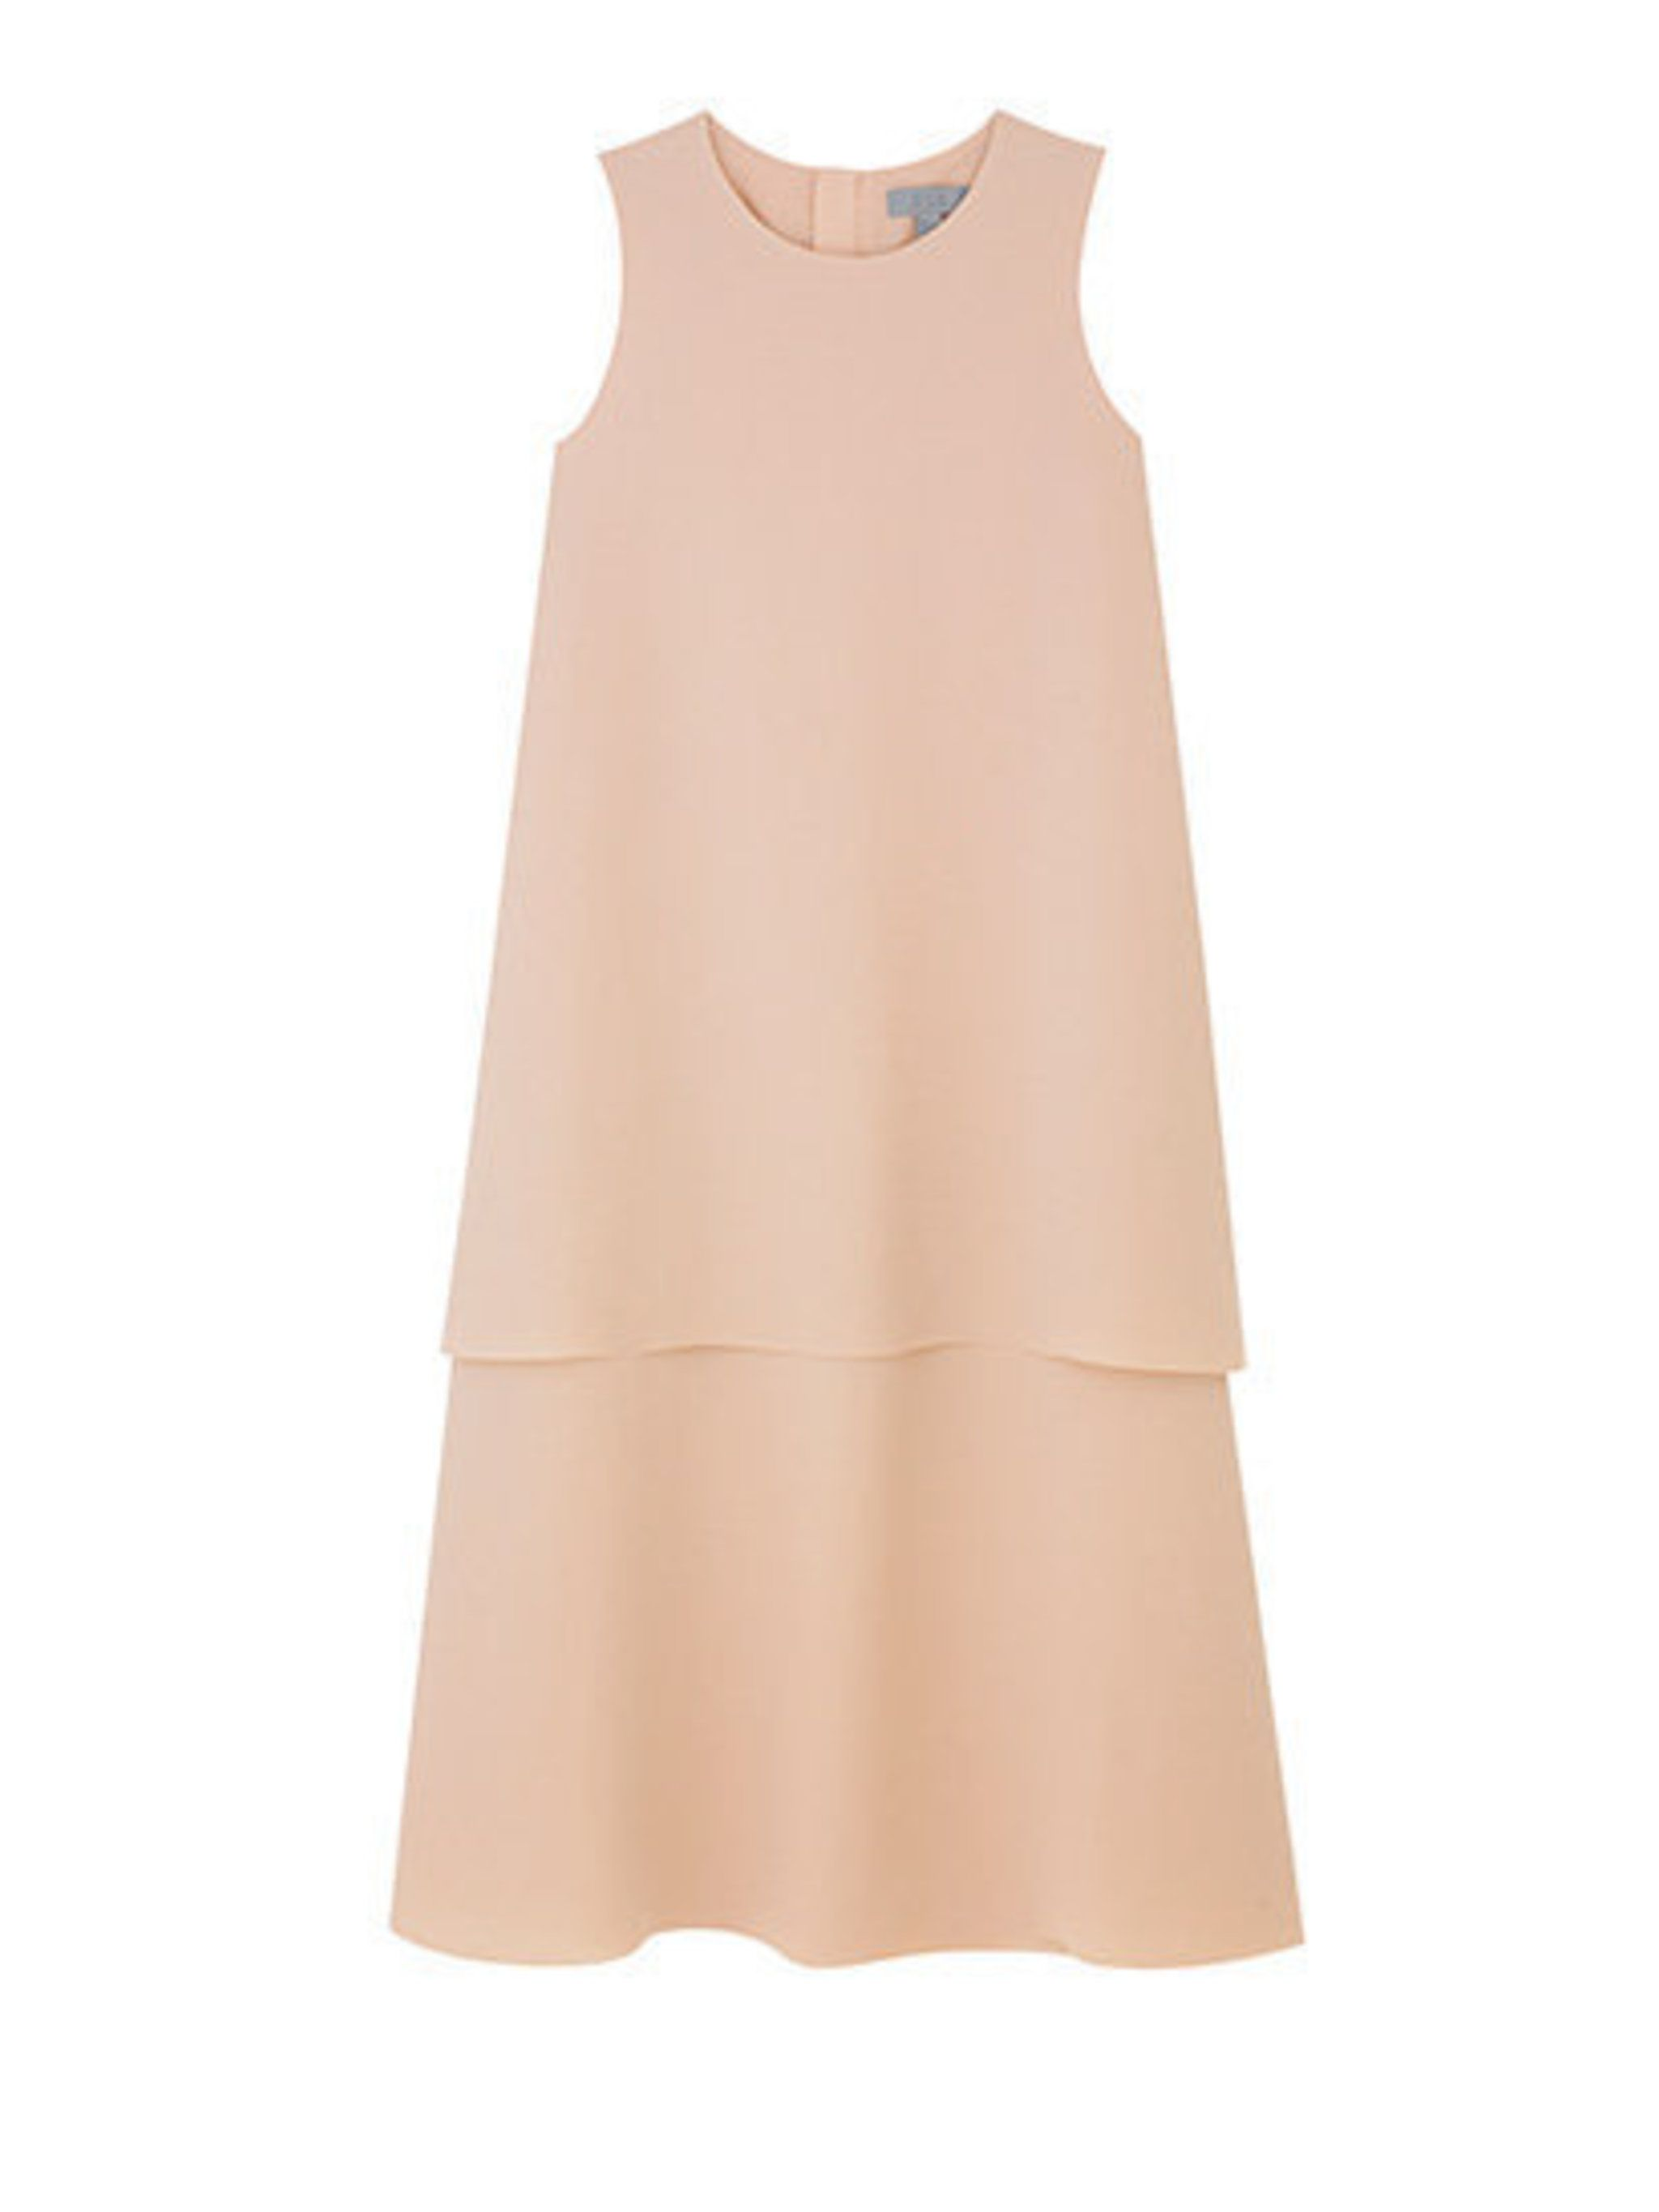 COS simple sleeveless A-line dress, £79